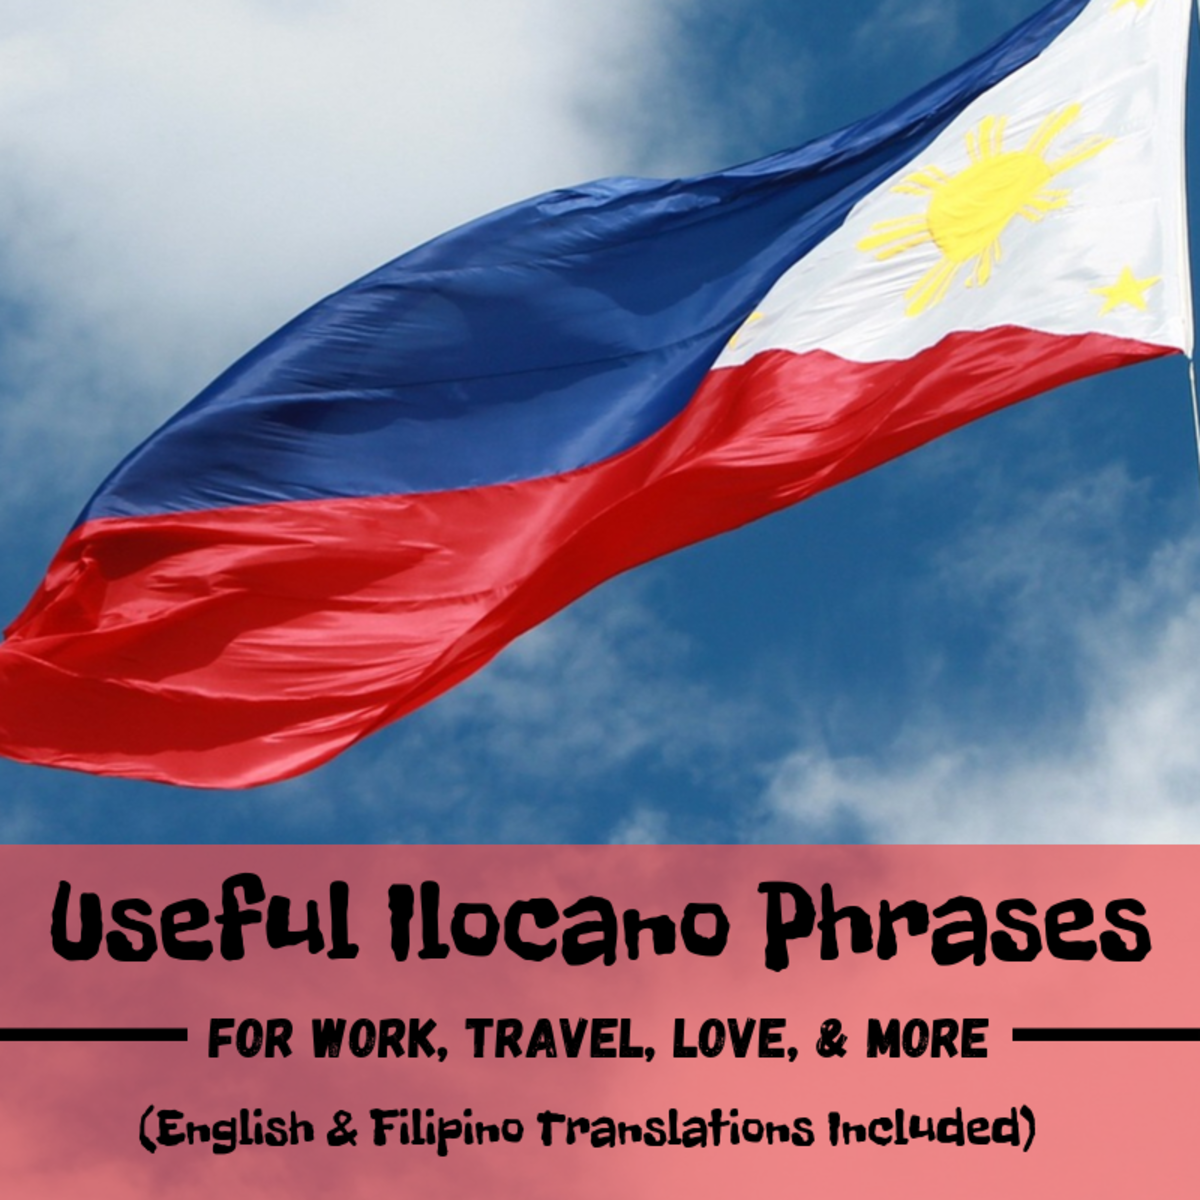 Ilocano Phrases for Self-Introduction, Love, Dining, Travel, and Errands